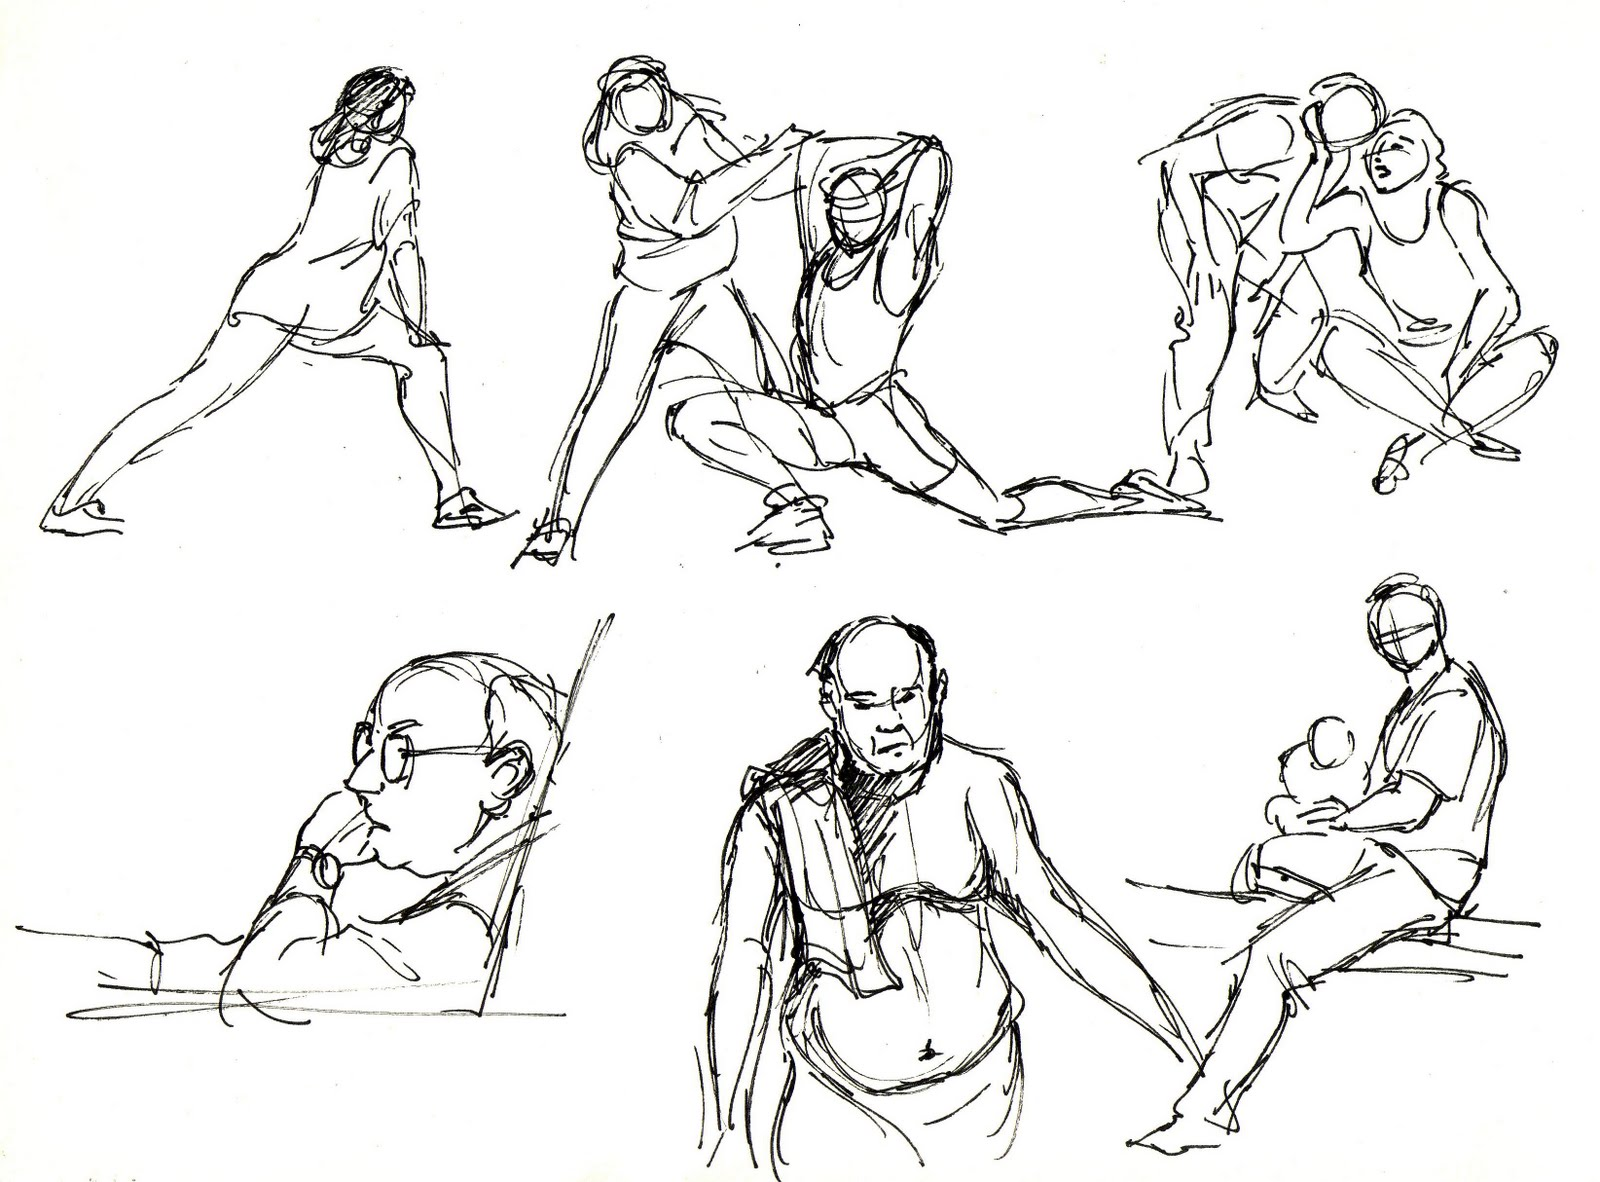 Inspector Cleuzo: Life Drawings and Quick Sketches